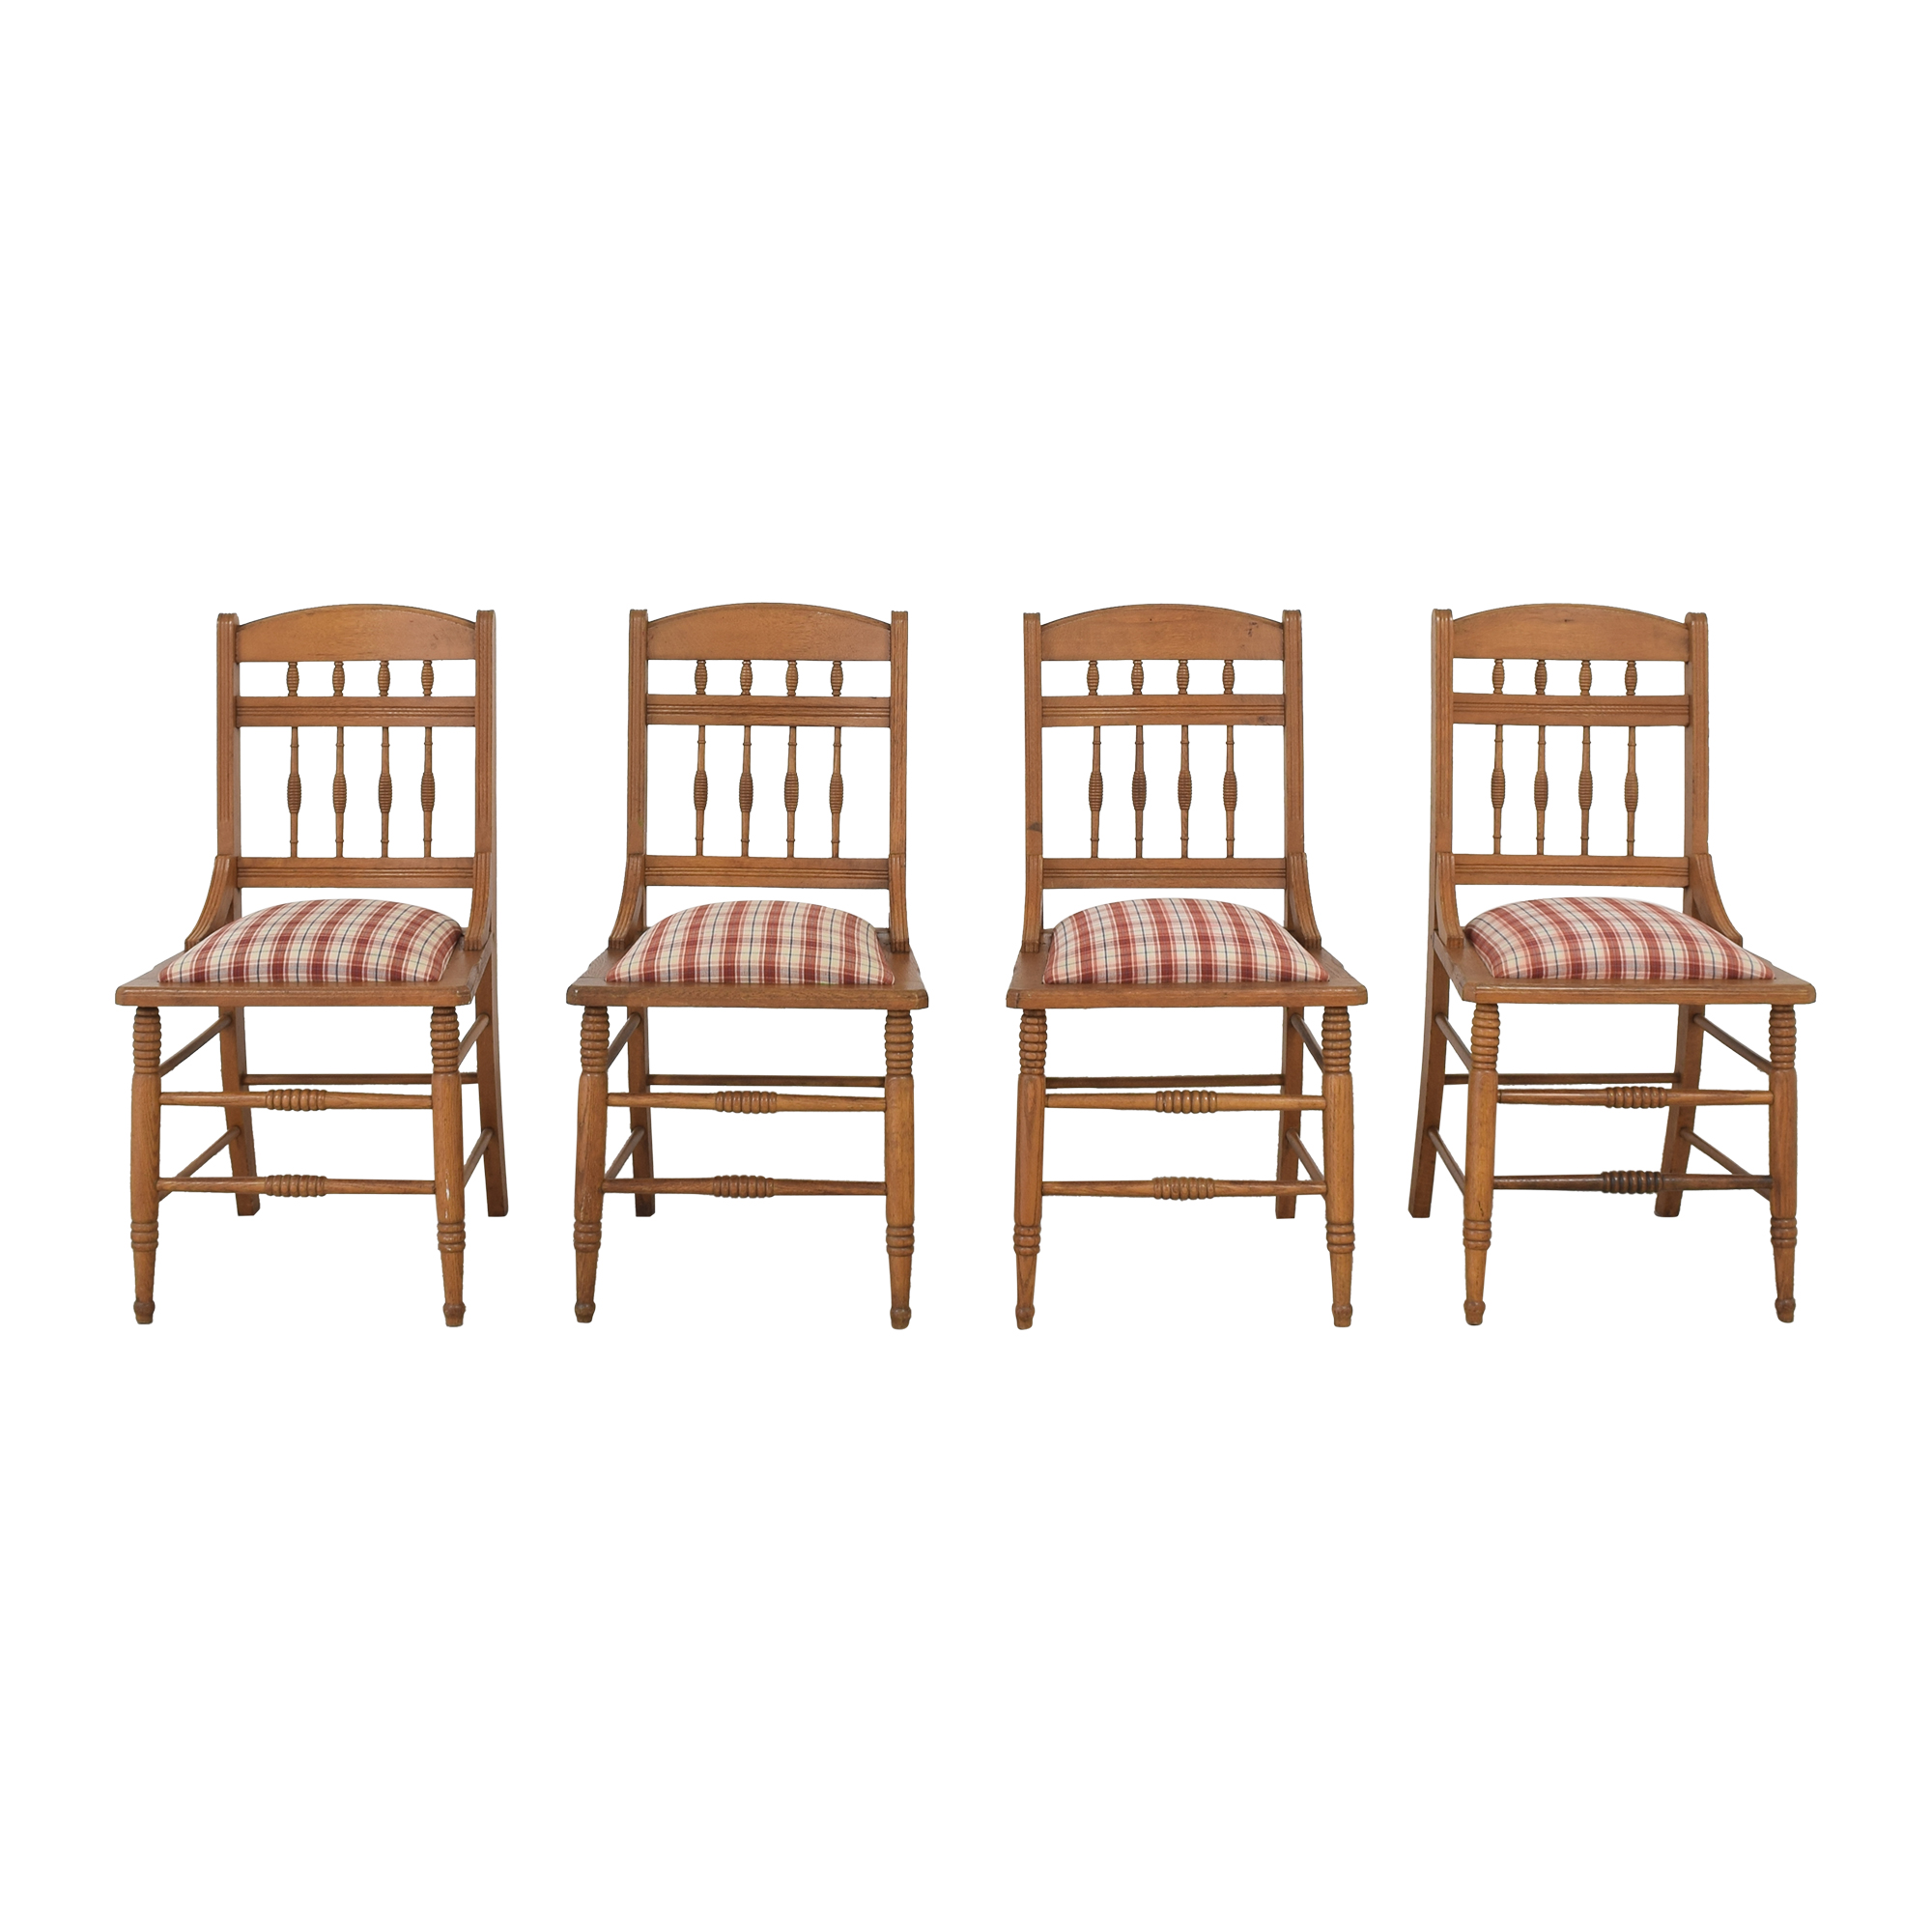 Upholstered Wood Framed Dining Chairs nj